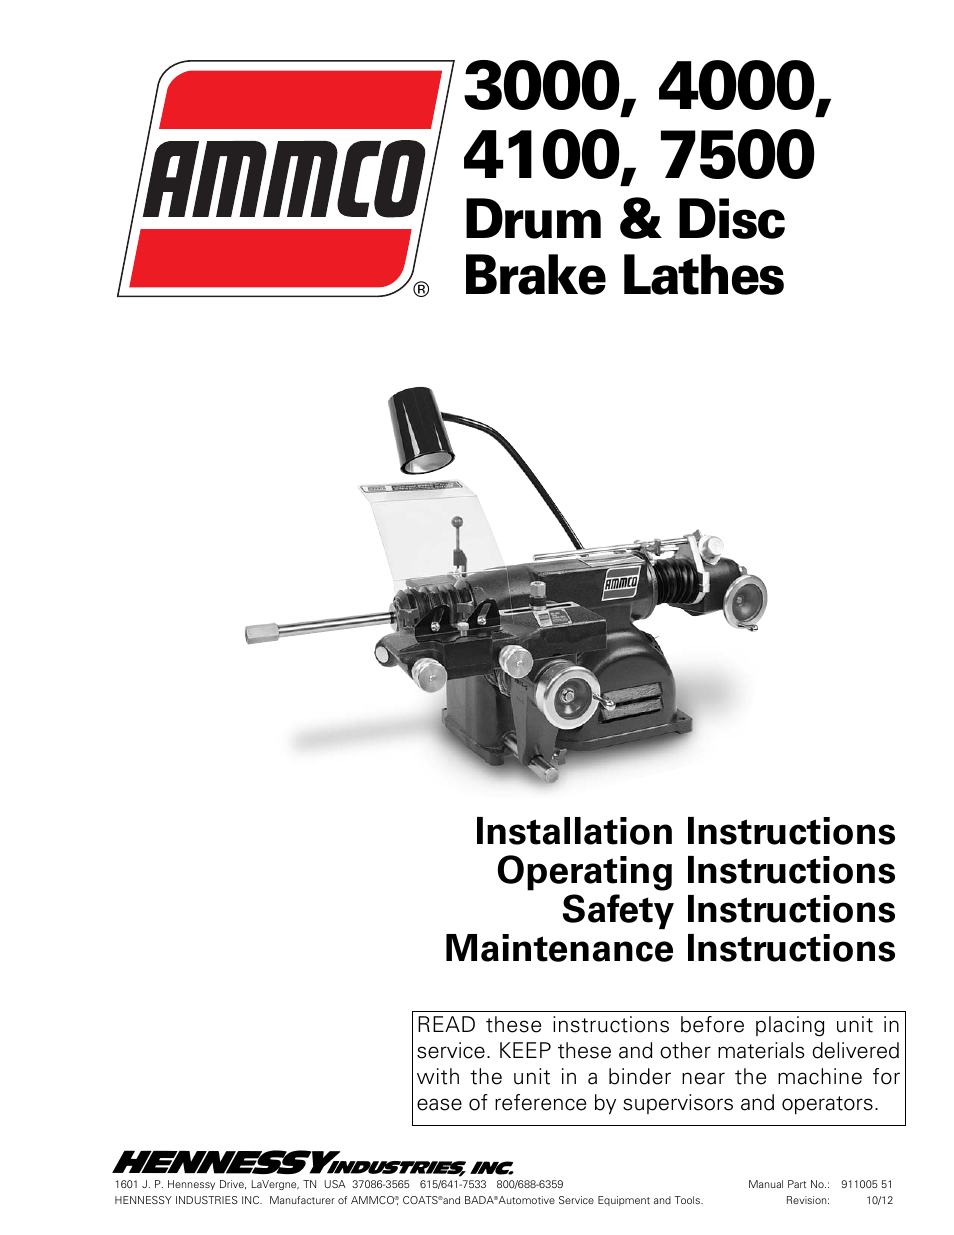 AMMCO 7700 Drum and Disc Brake lathe User Manual | 20 pages